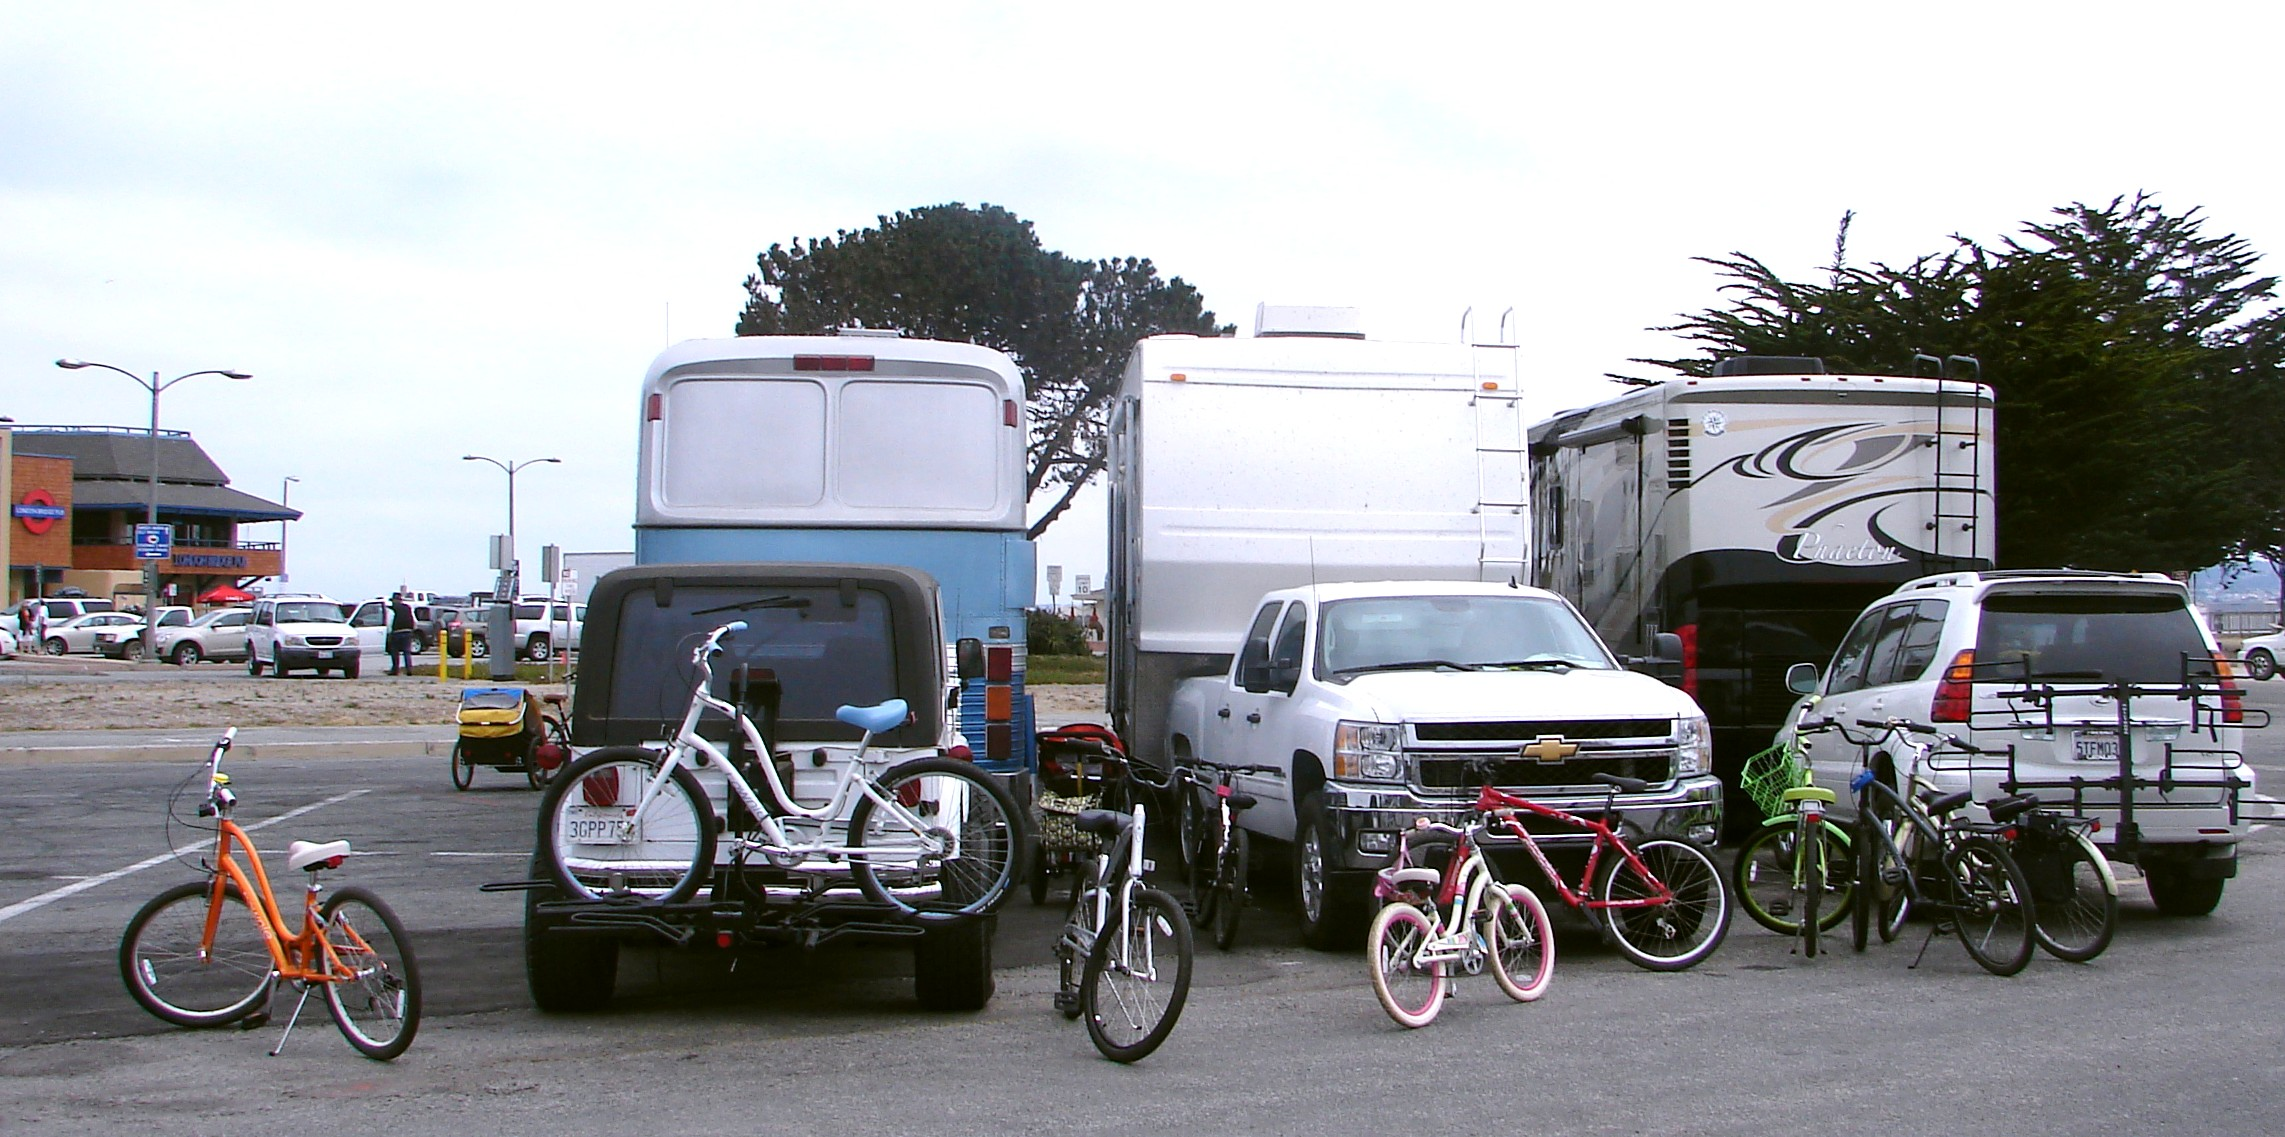 5 Bike And Ride Options Bicycling Needn T Be All Or